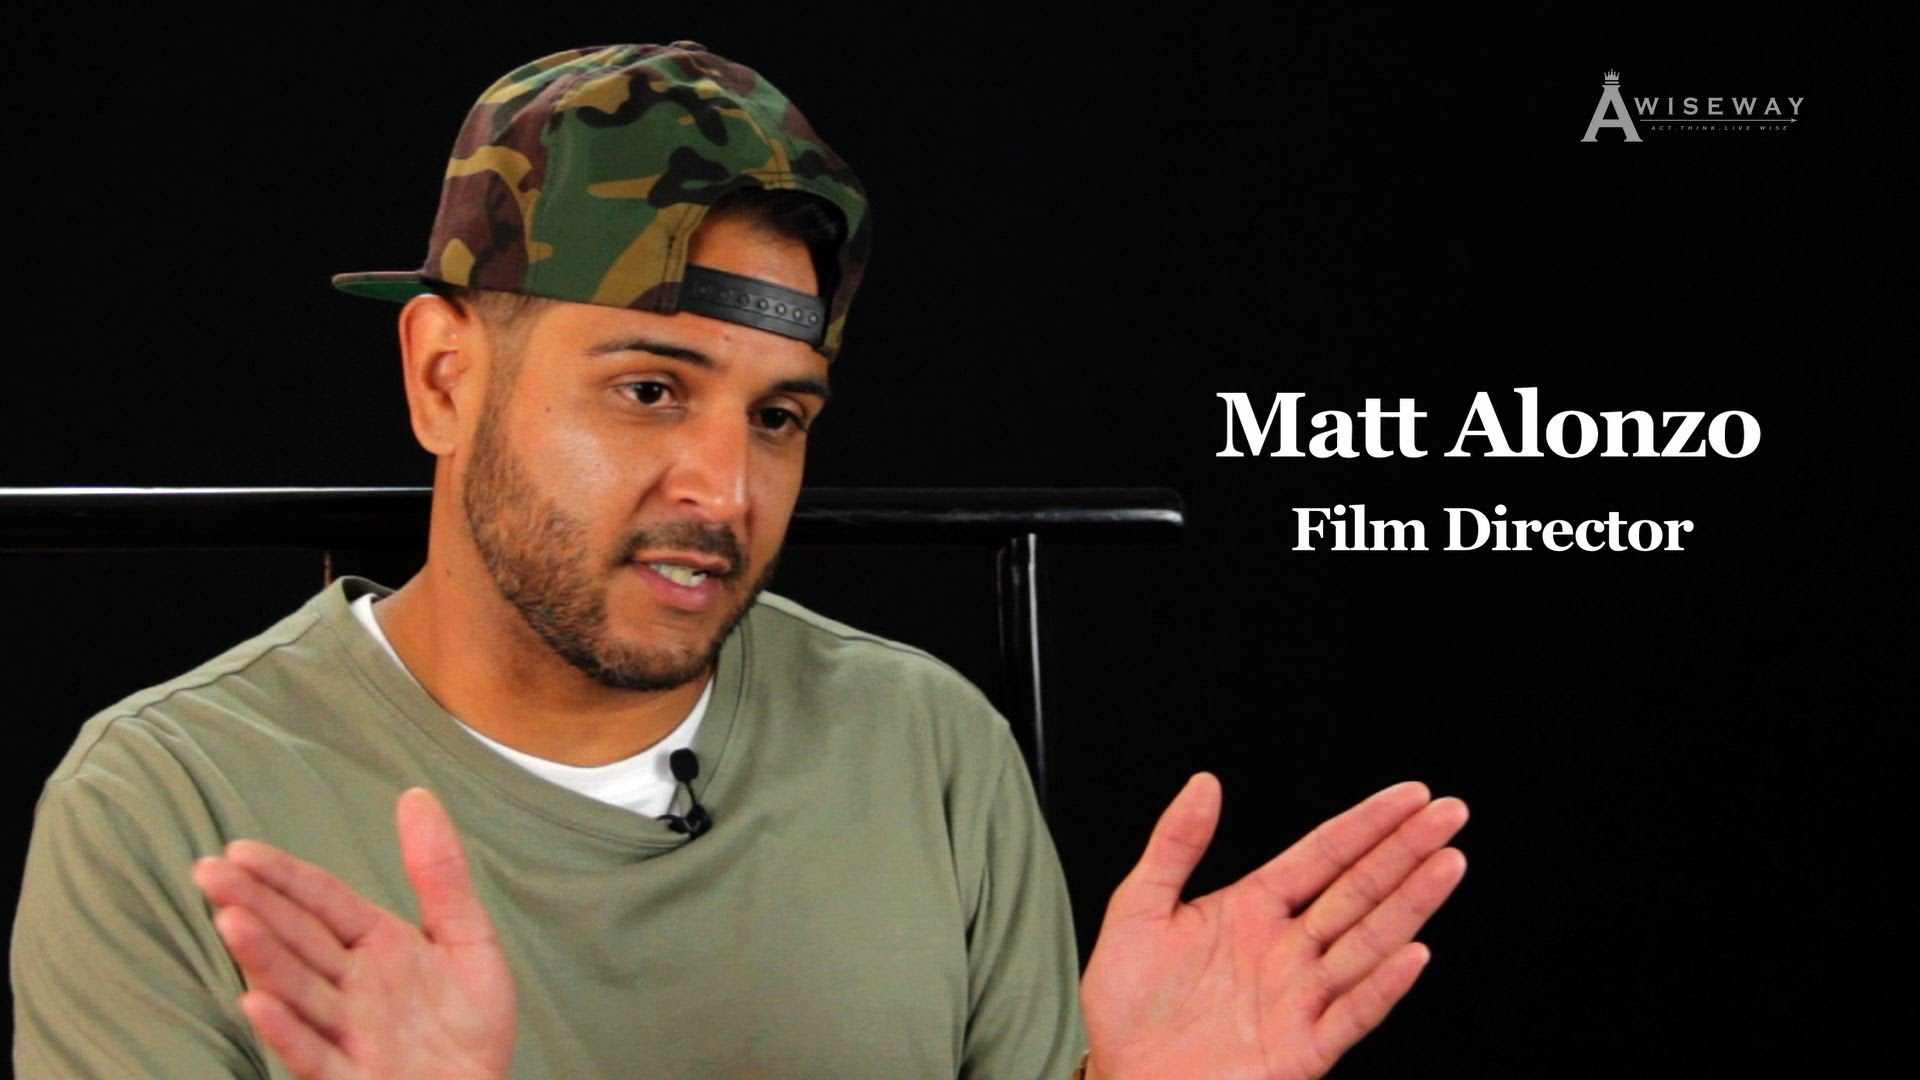 Film Director's Advice on Becoming Successful in the Film Industry